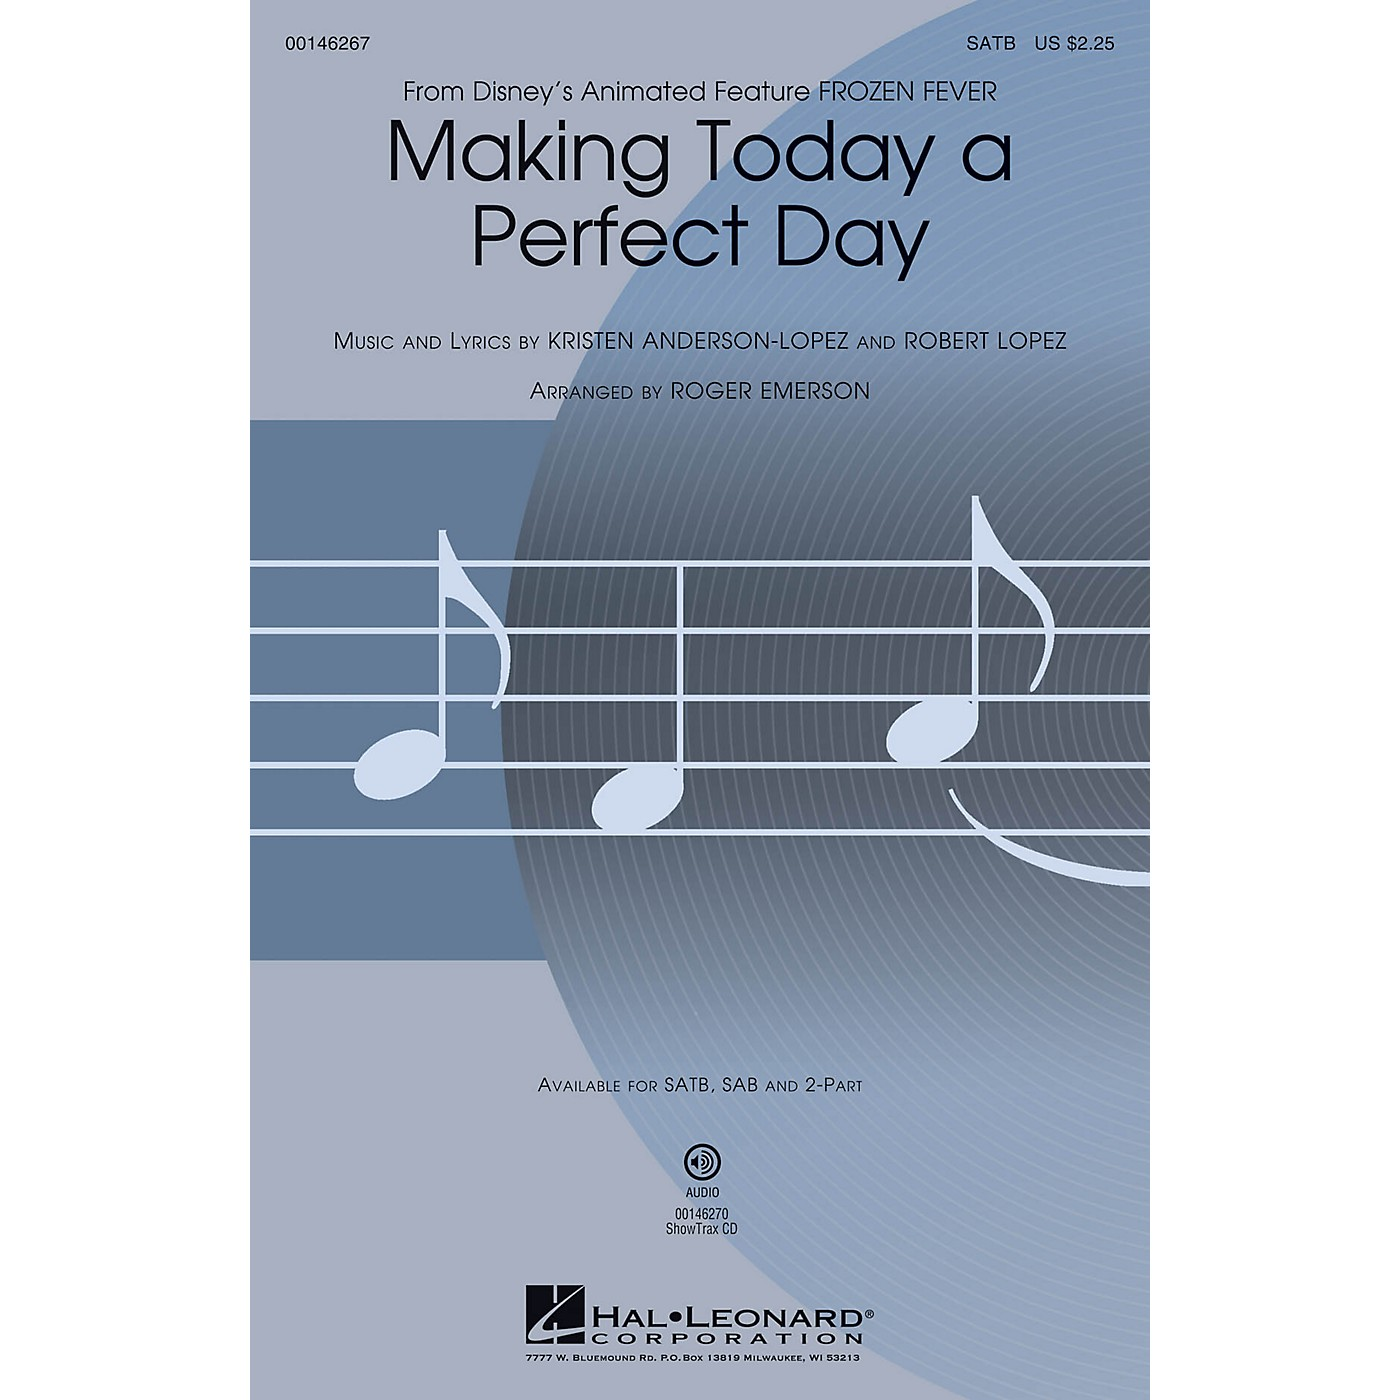 Hal Leonard Making Today a Perfect Day (from Frozen Fever) 2-Part Arranged by Roger Emerson thumbnail